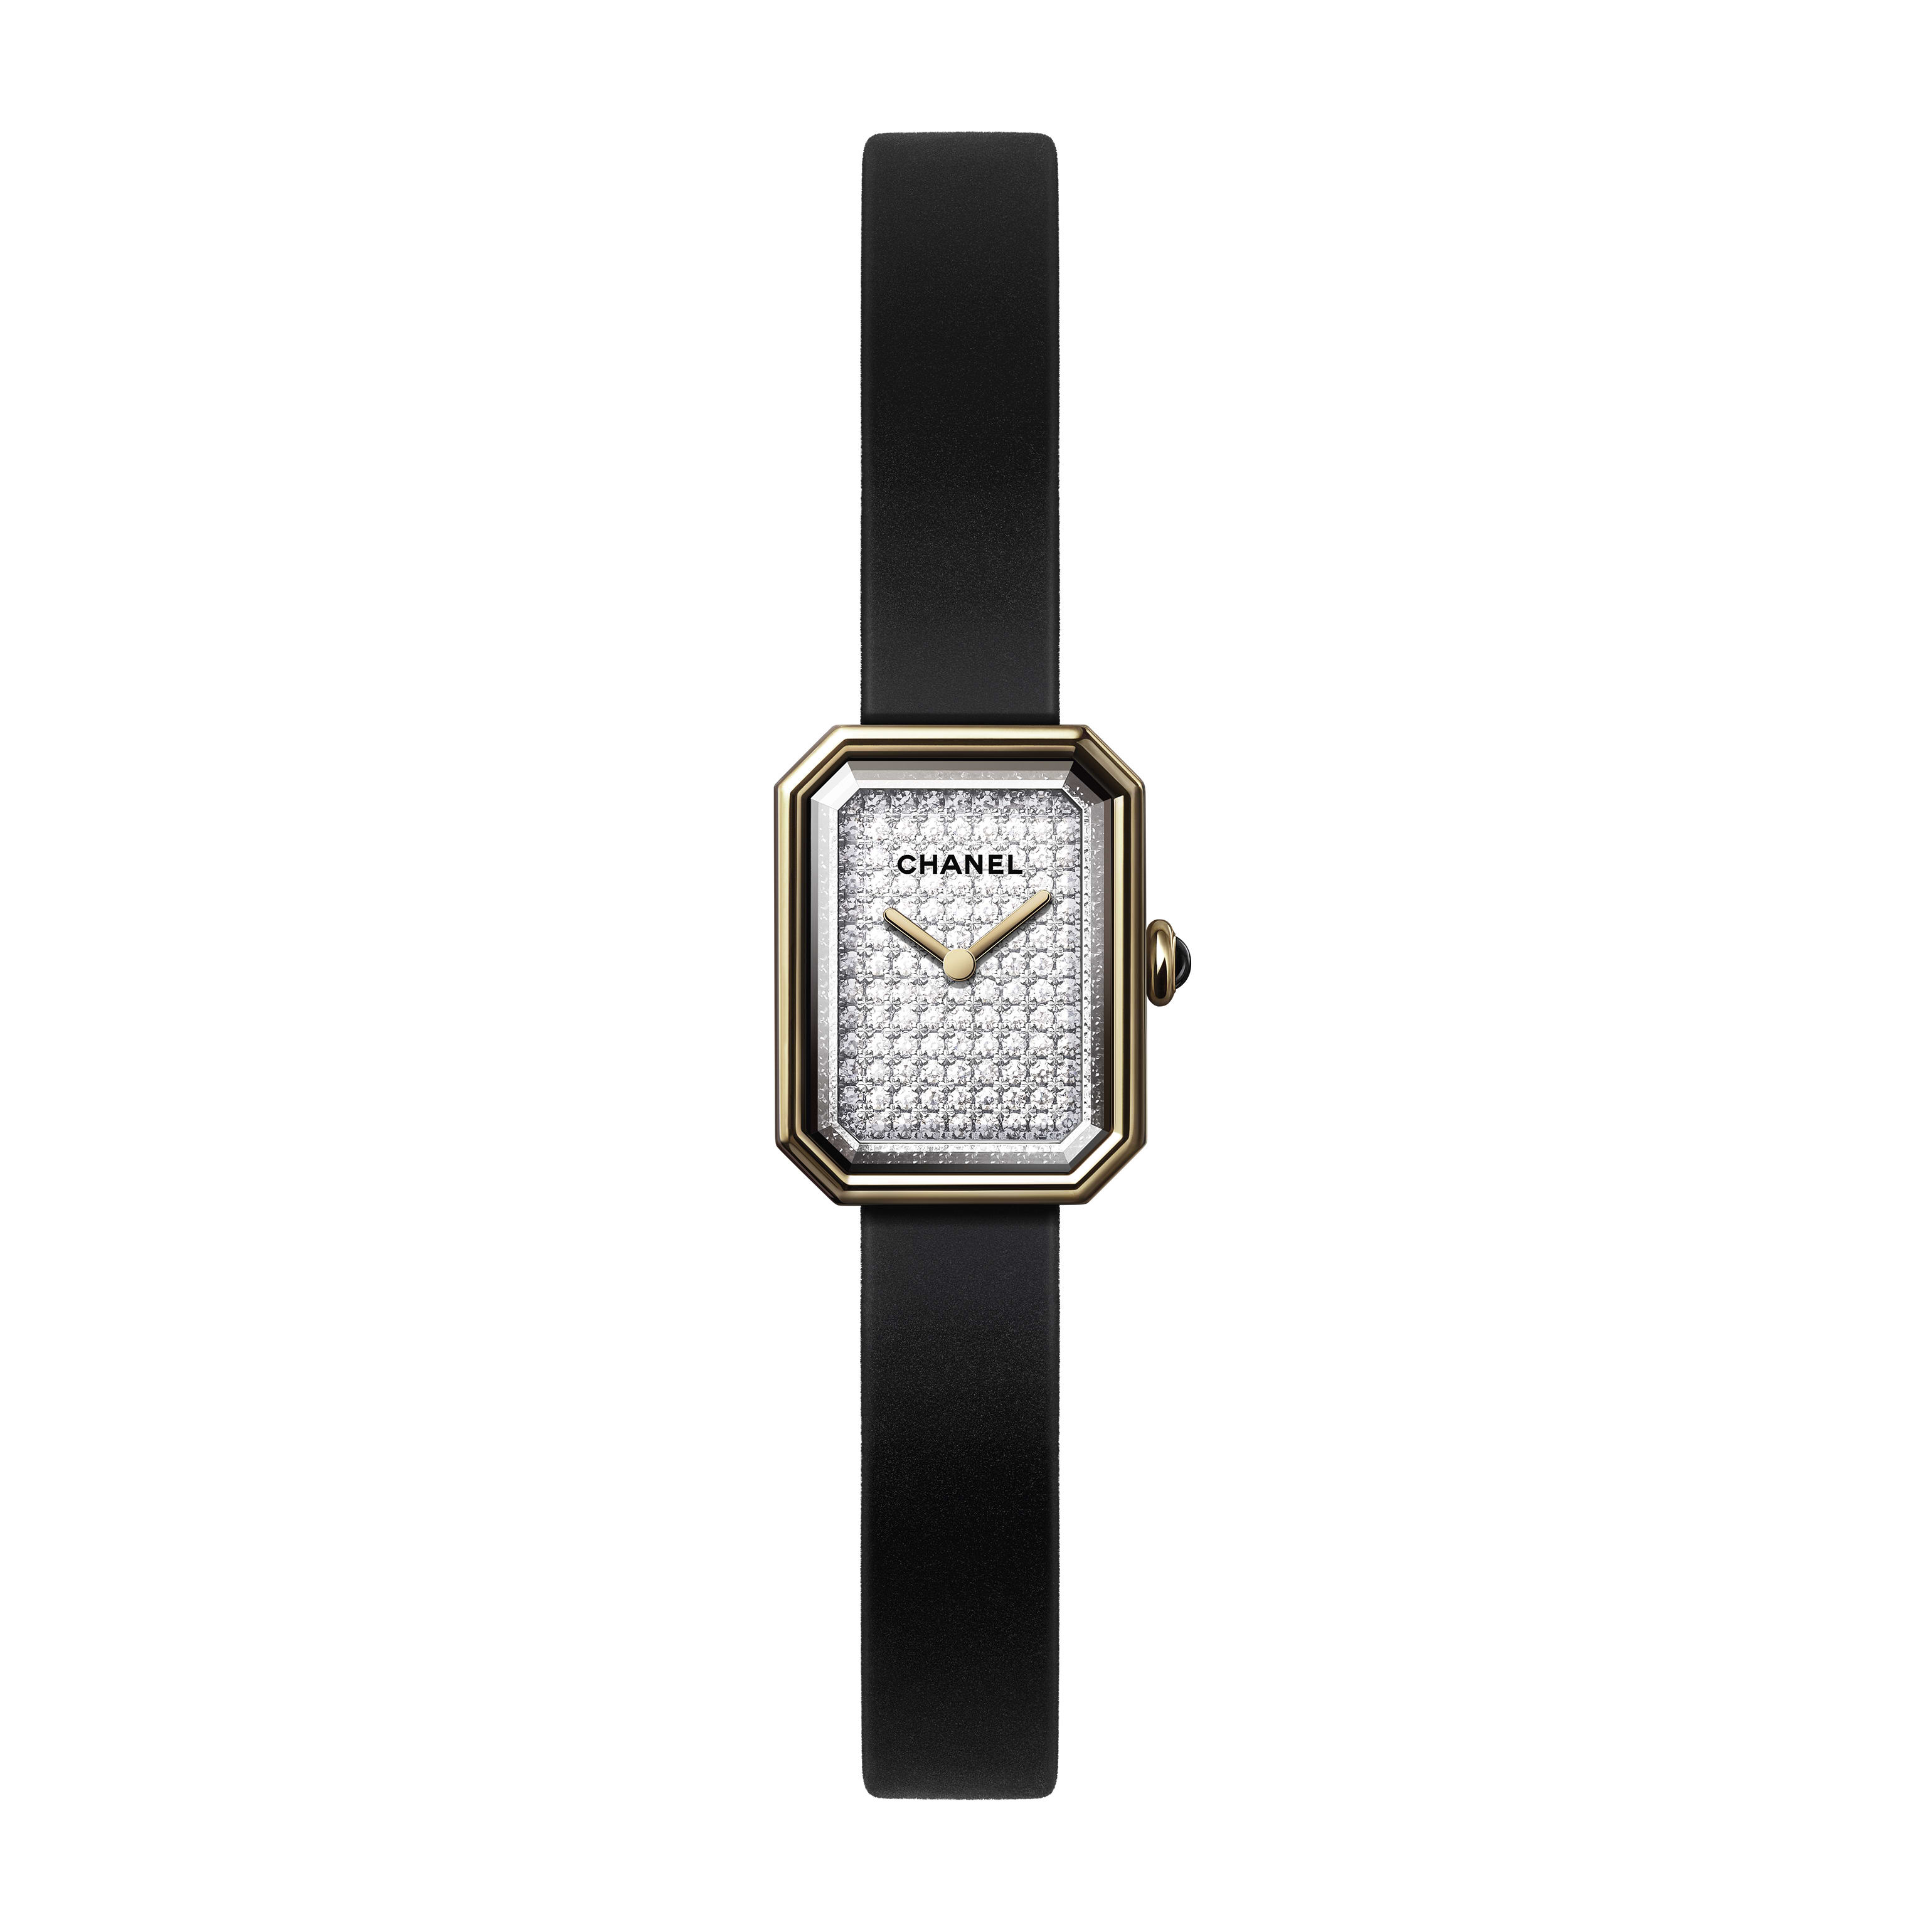 Première Velours Watch - Yellow gold and titanium, black rubber strap with velvet touch, dial set with brilliant-cut diamonds - CHANEL - Default view - see standard sized version